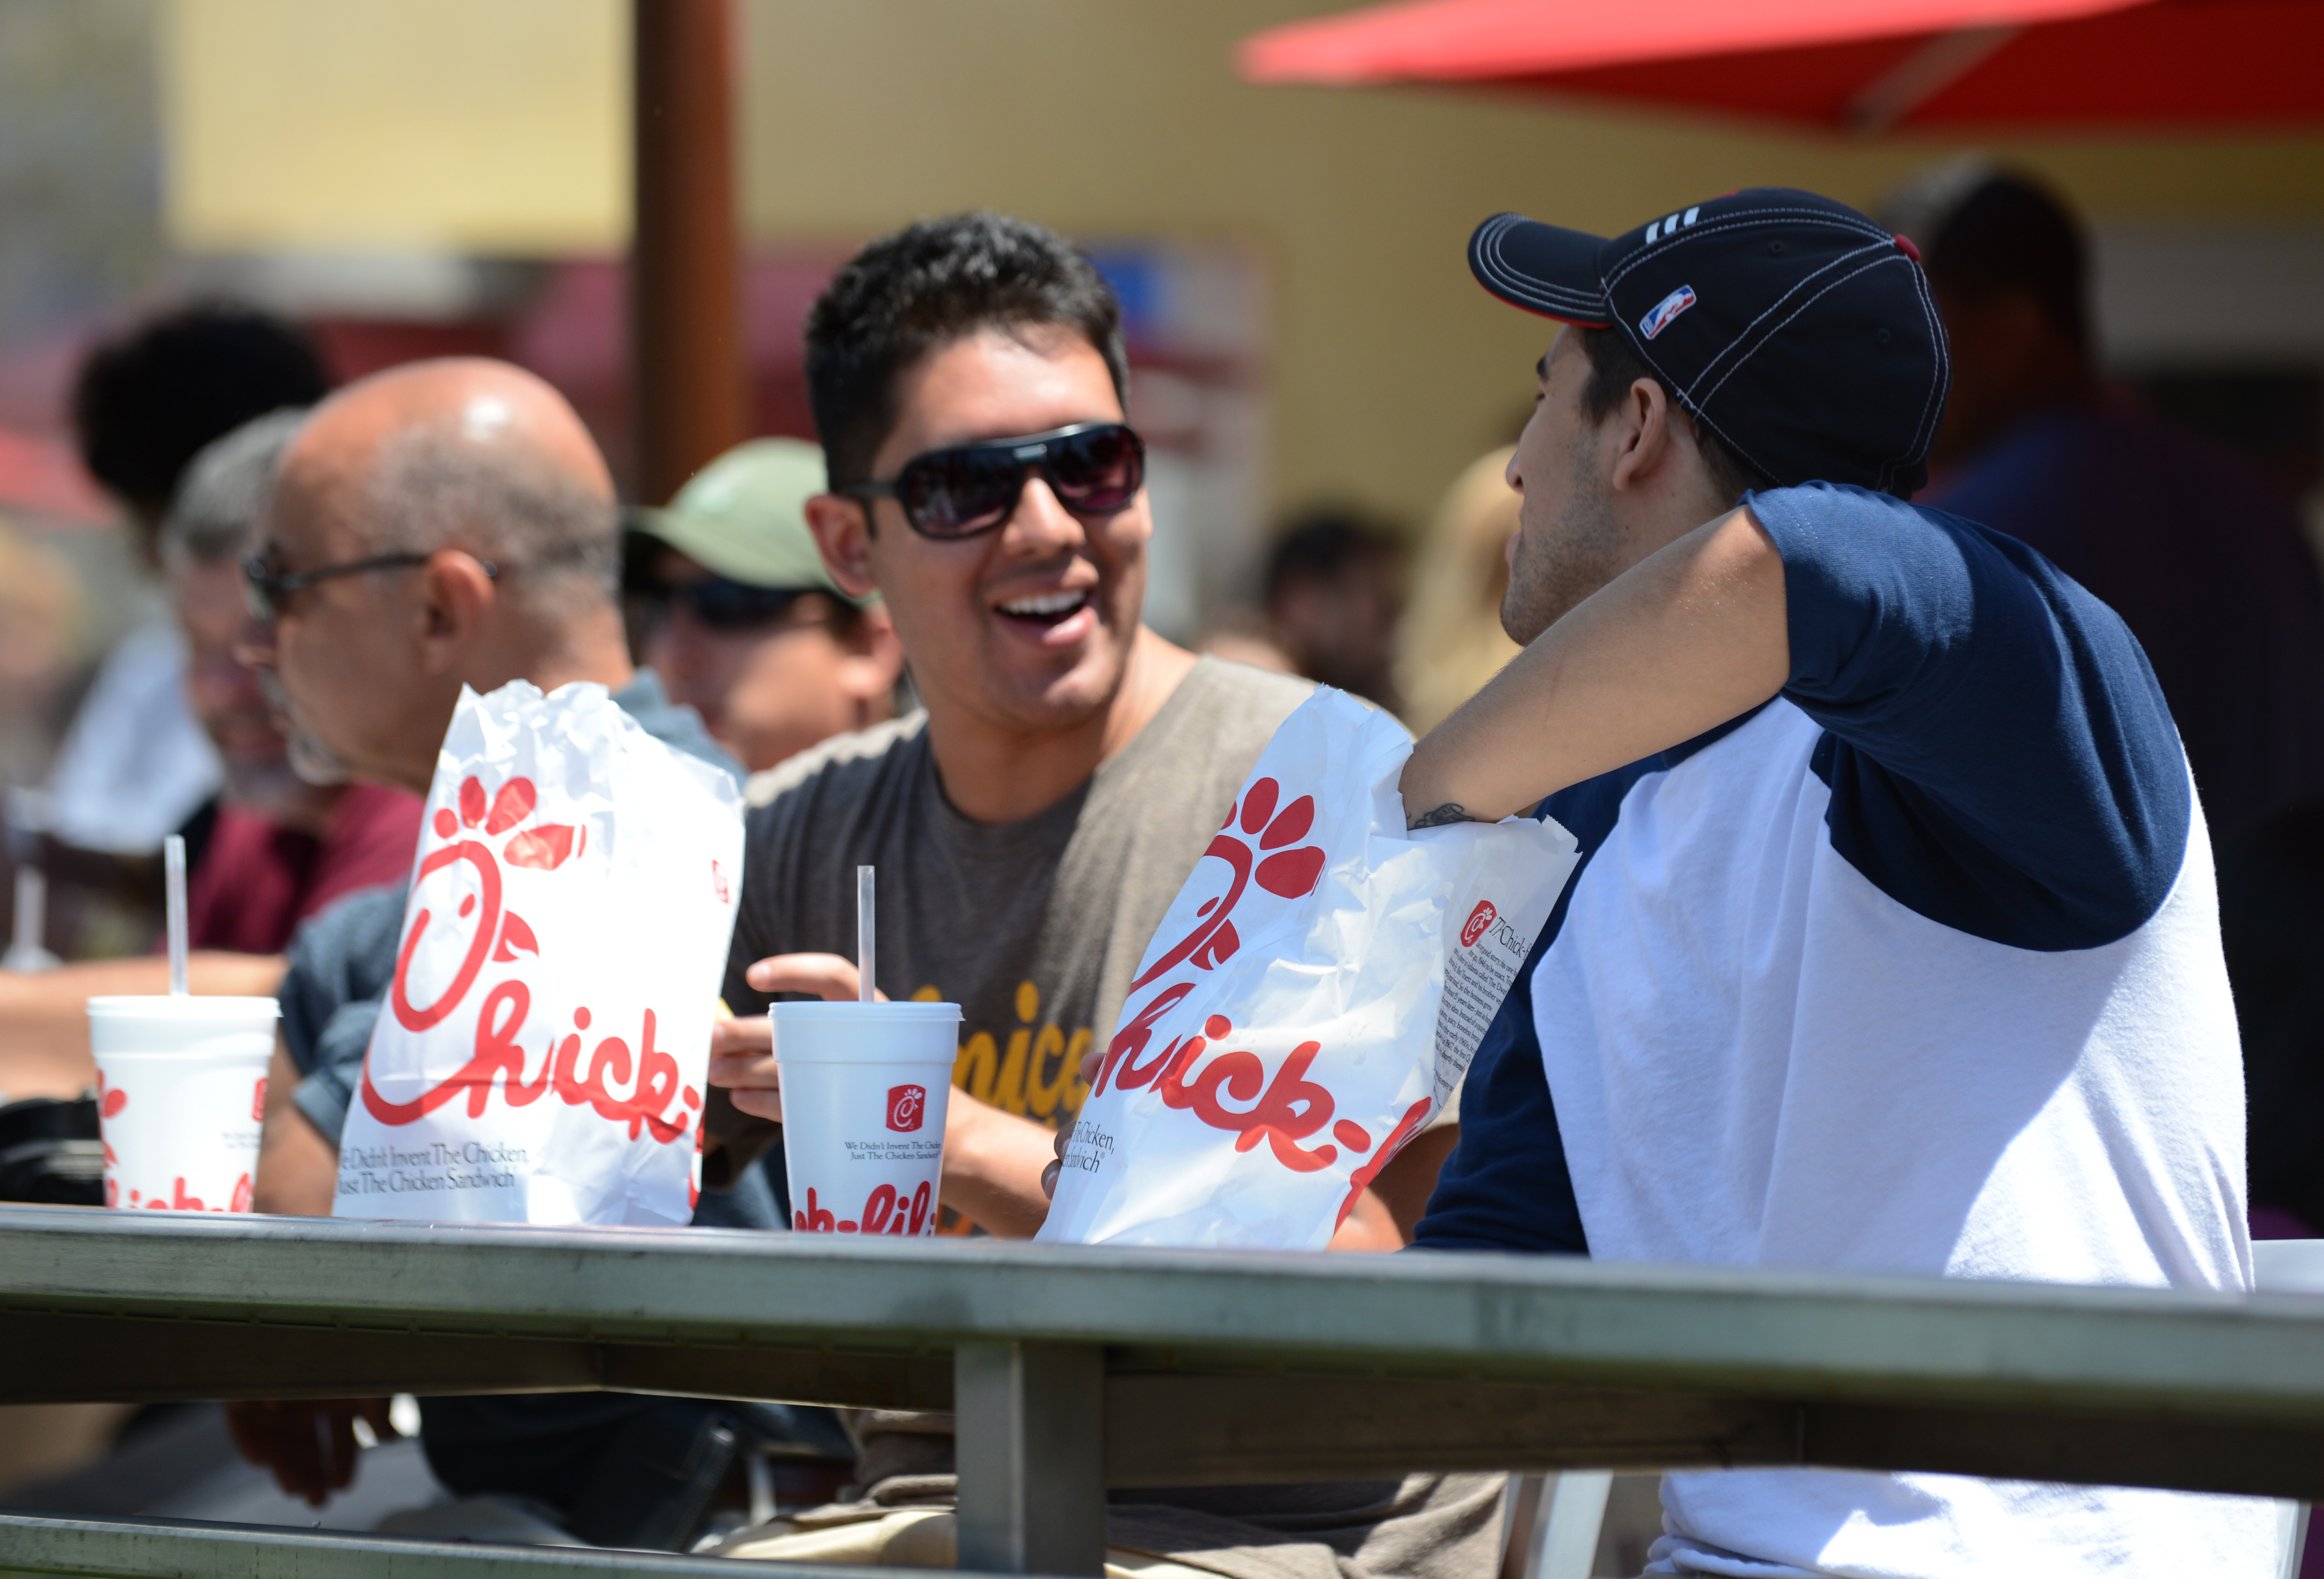 Two men prepare to have lunch on the patio of the Chick-fil-A in Hollywood, California, August 1, 2012. (ROBYN BECK/AFP/GettyImages)